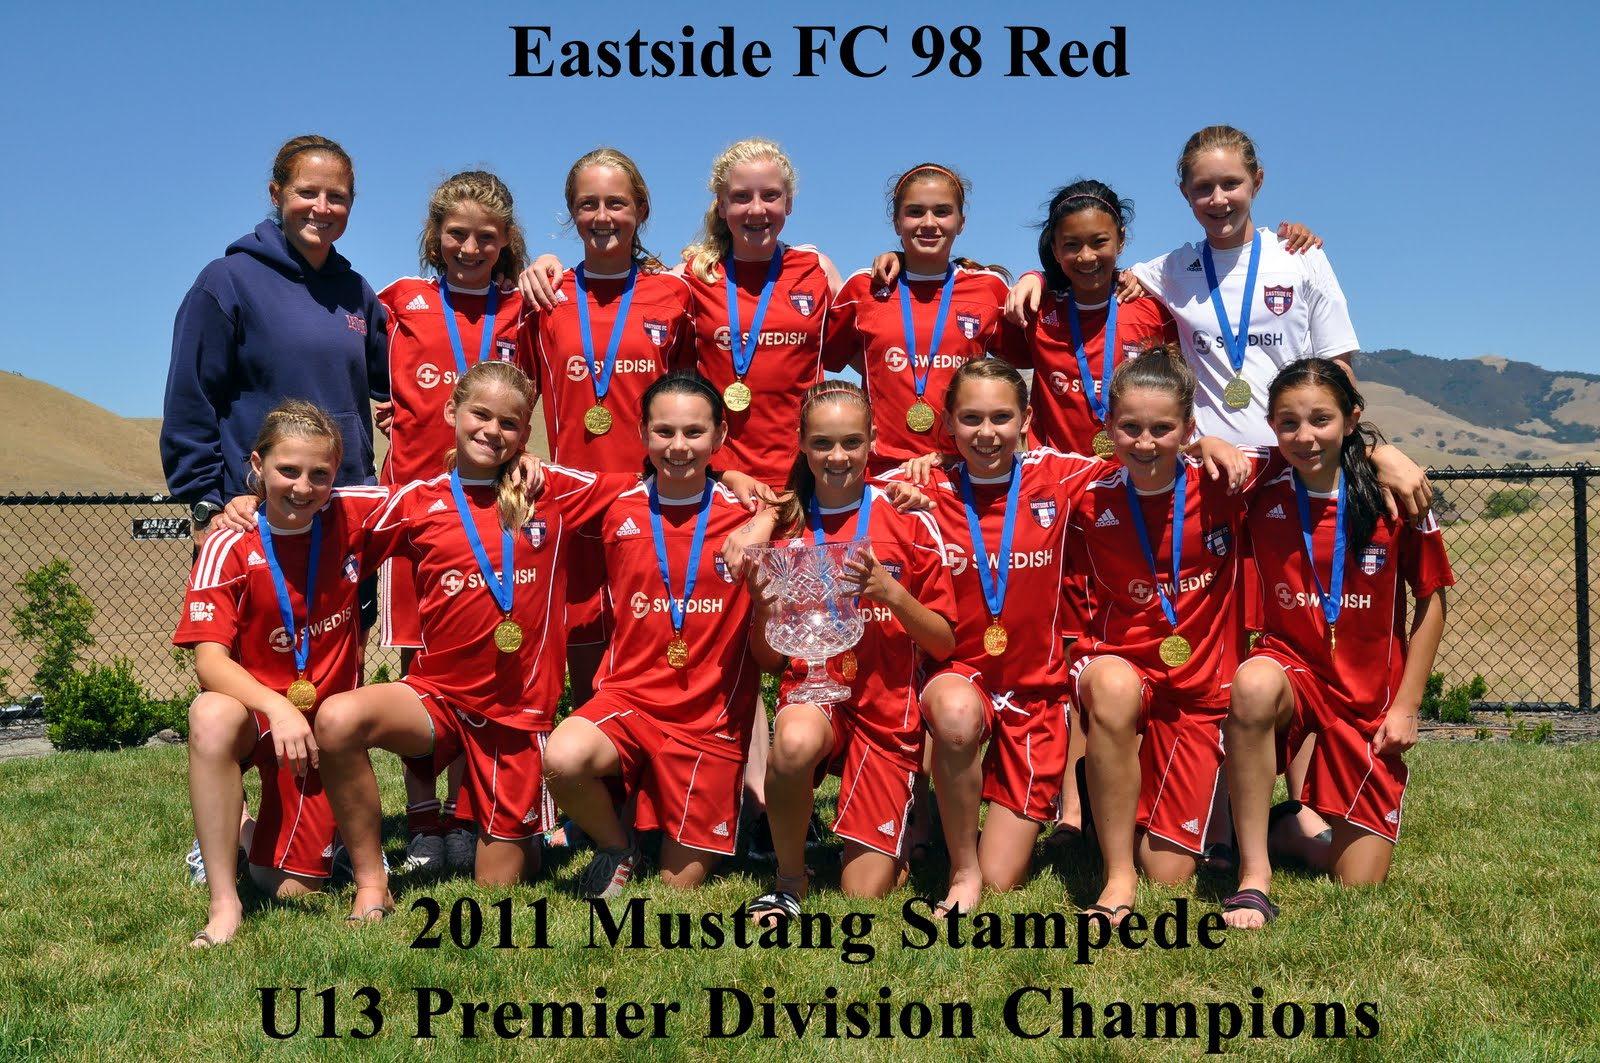 Eastside Fc News Girls 98 Red Team Wins Mustang Stampede